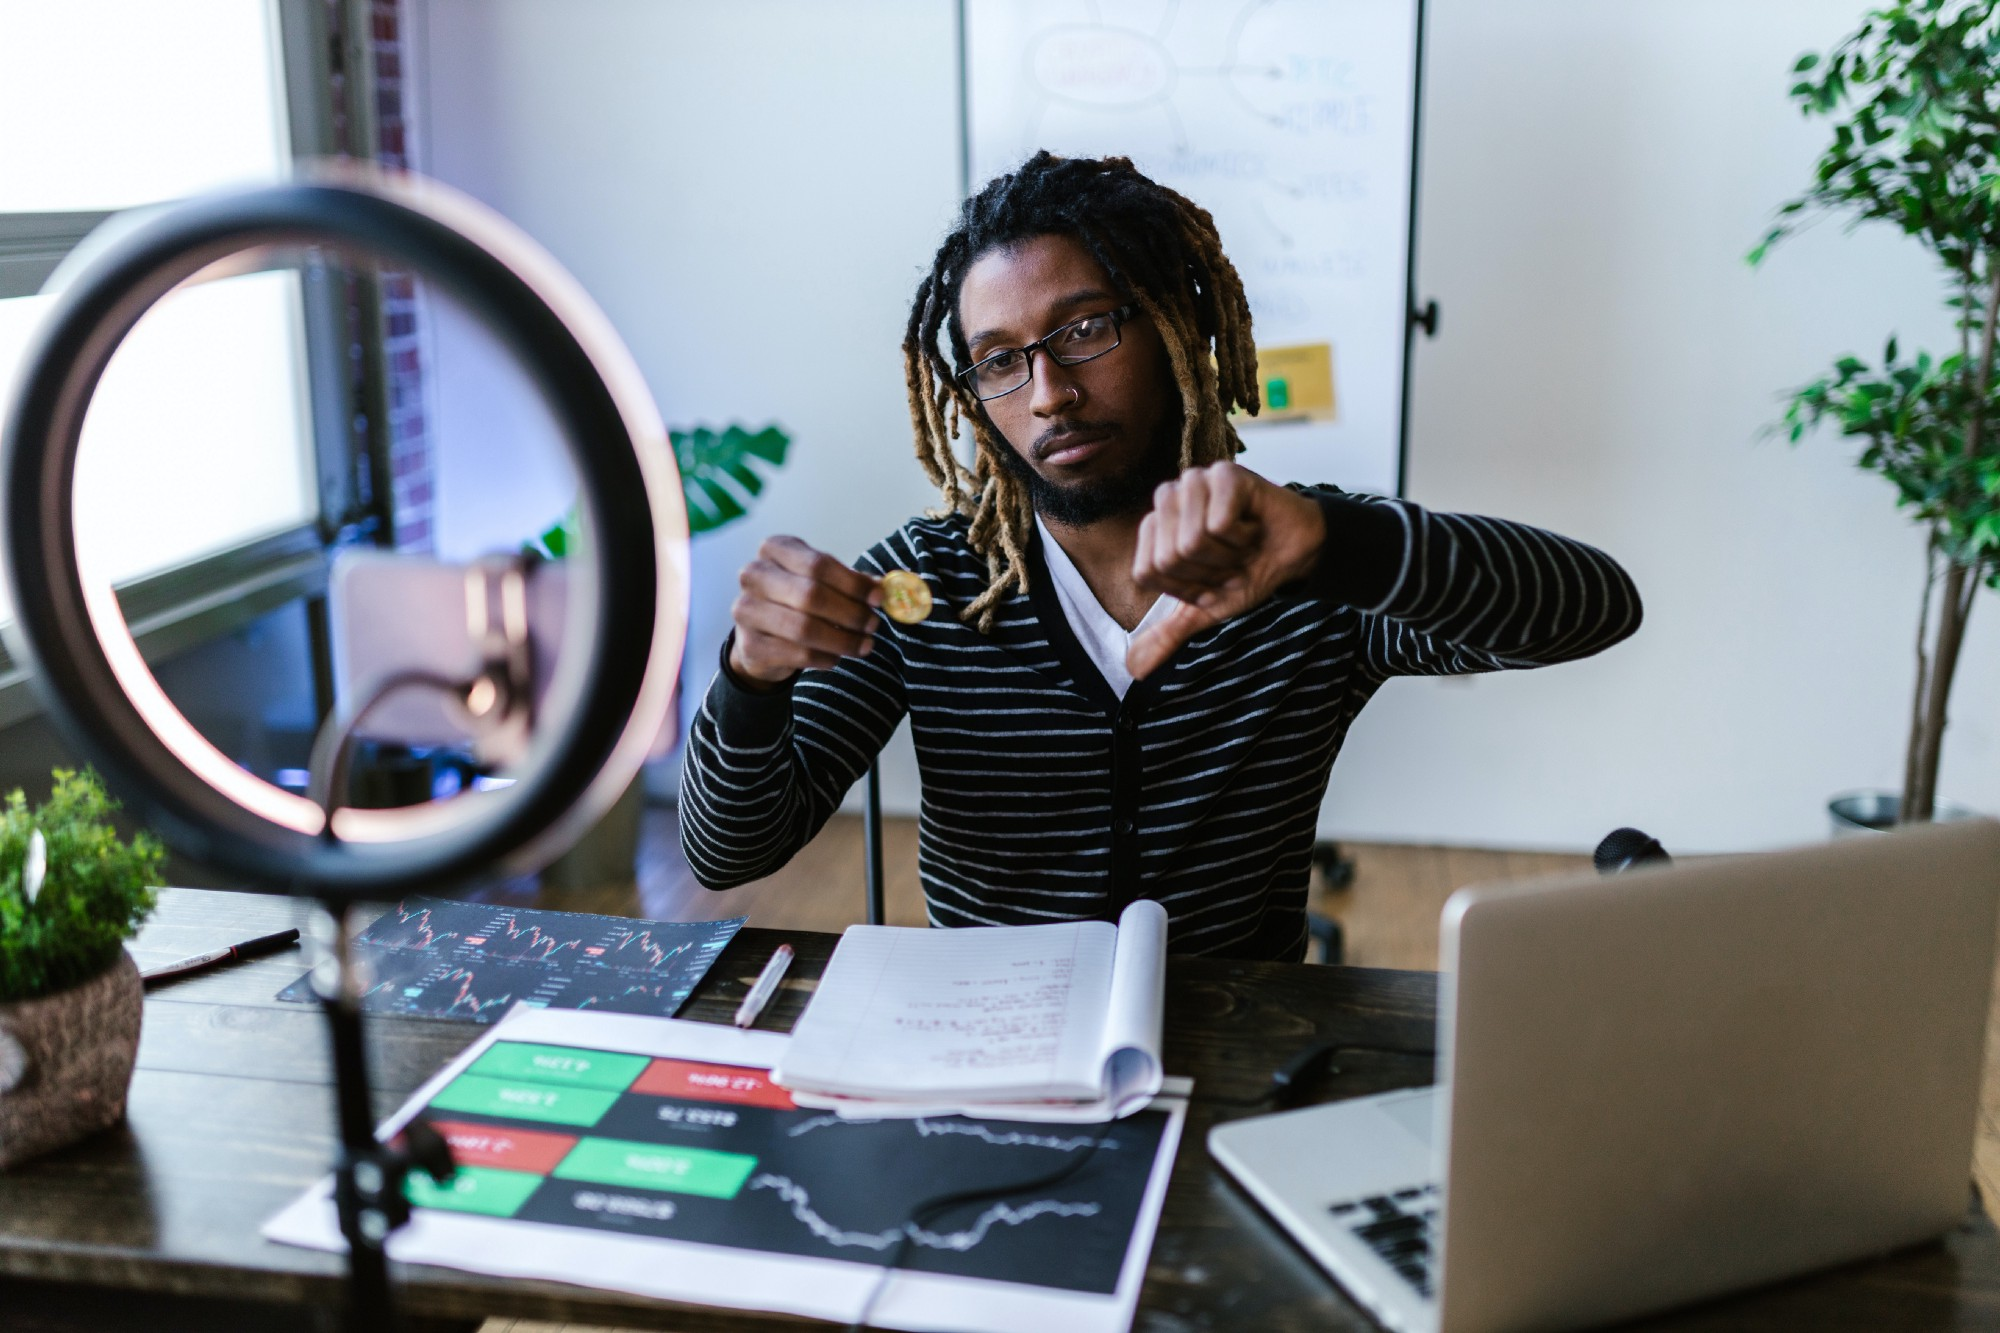 Man with a video set up is holding a physical Bitcoin and giving a thumbs-down sign in front of a desk with papers, graphs, laptop, ring light, etc.